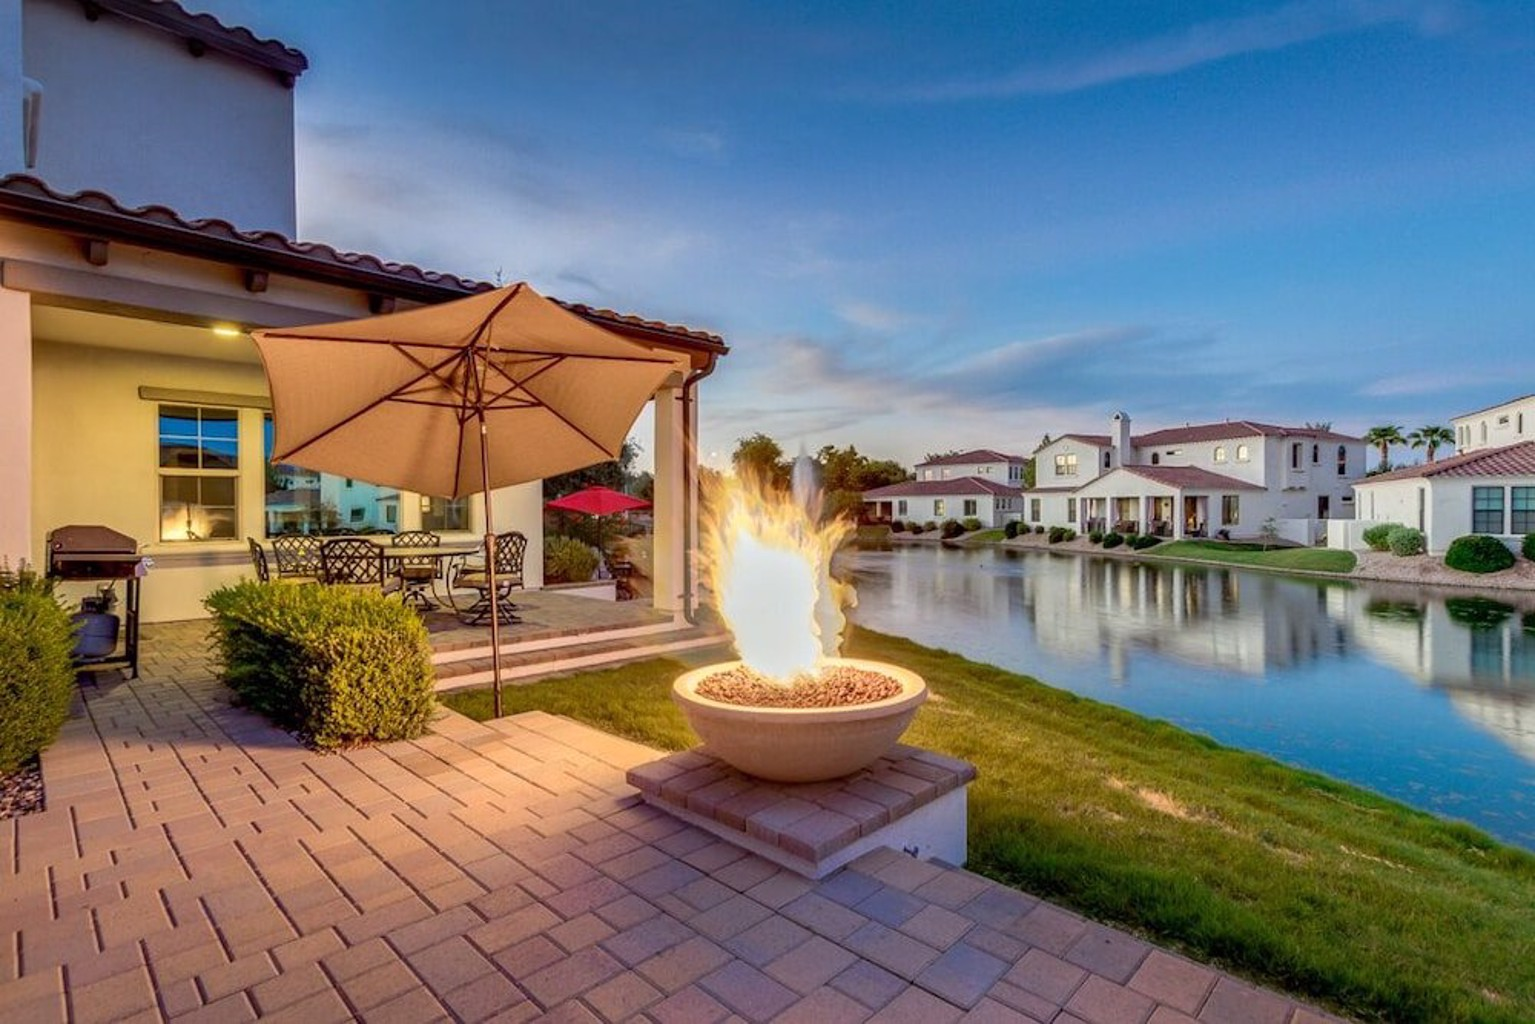 Luxurious Waterfront Oasis With Fire Pit bbq 3 Bedroom Home